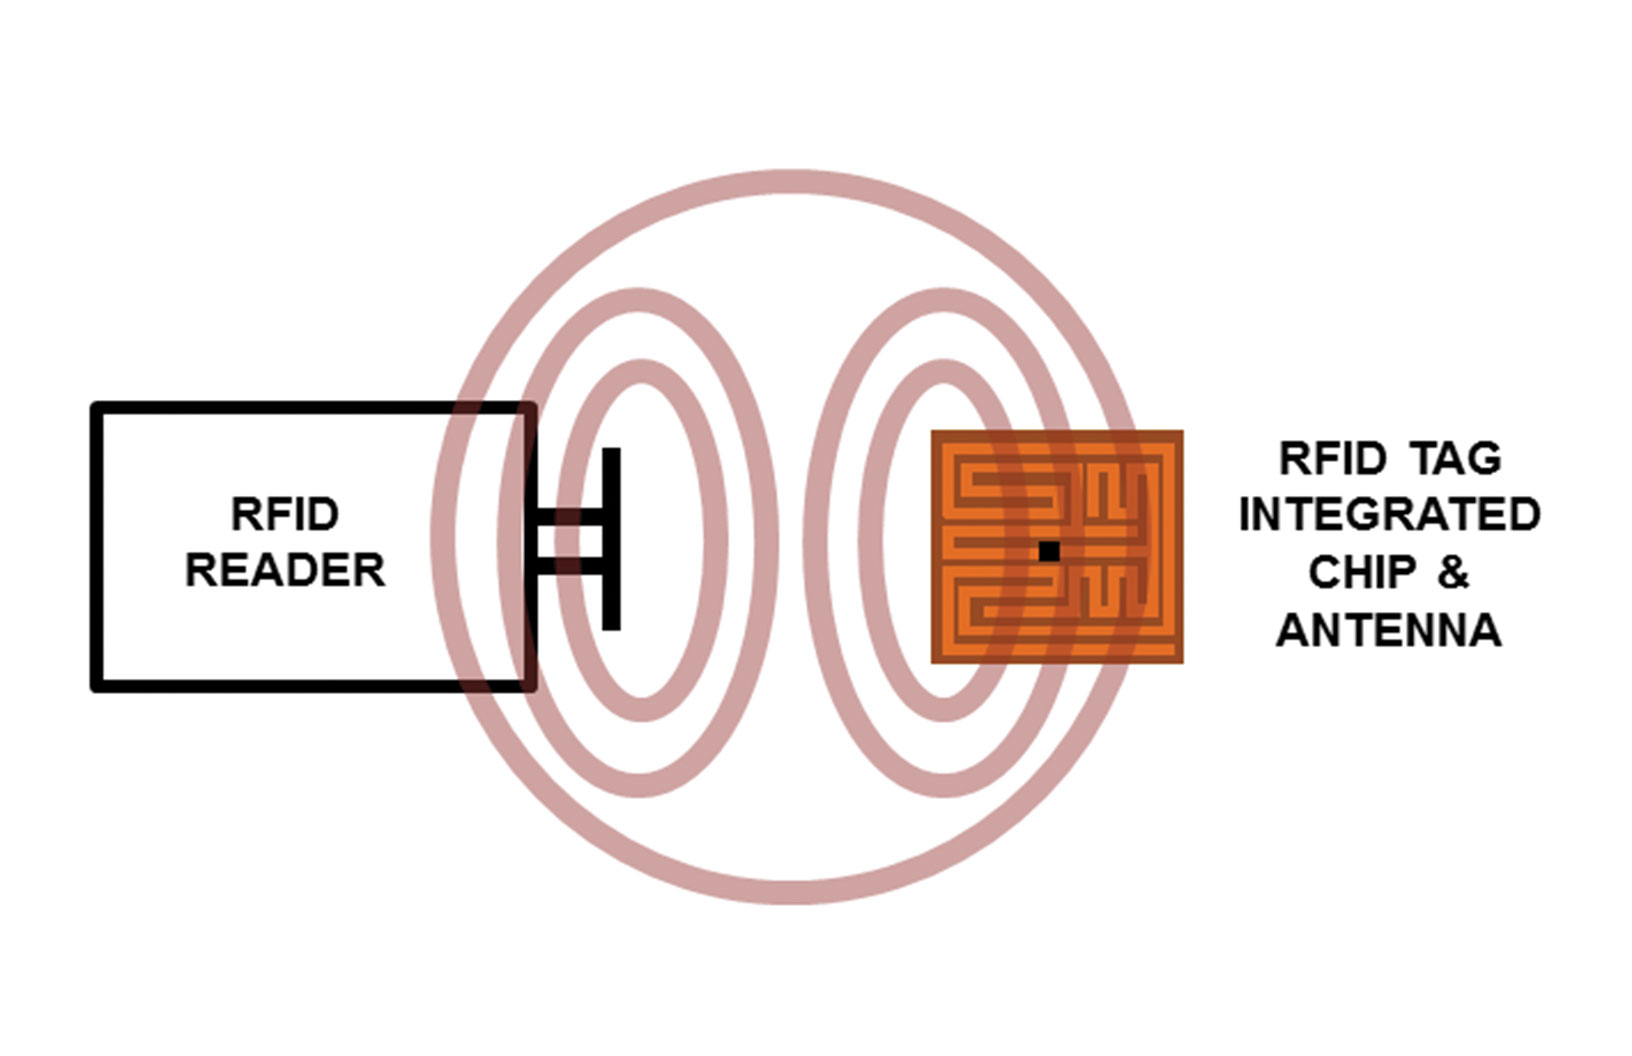 A simplified view of an RFID reader and chip coupling by propagation means, typical of higher frequency systems. Note that the actual chip (shown as a black blip among the antenna pattern of the tag on the right) may be near microscopic.